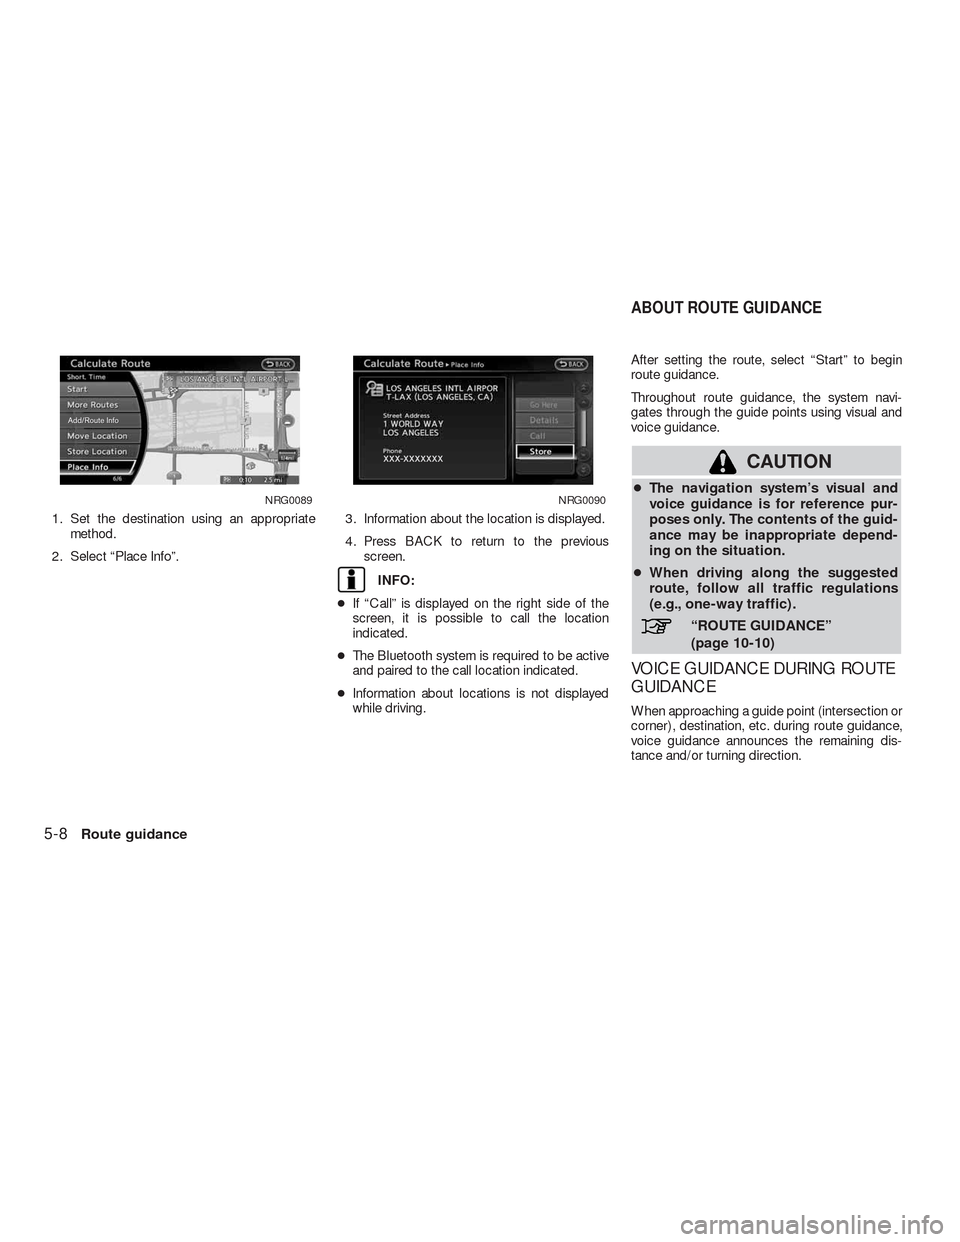 NISSAN ALTIMA COUPE 2010 D32 / 4.G Navigation Manual, Page 113